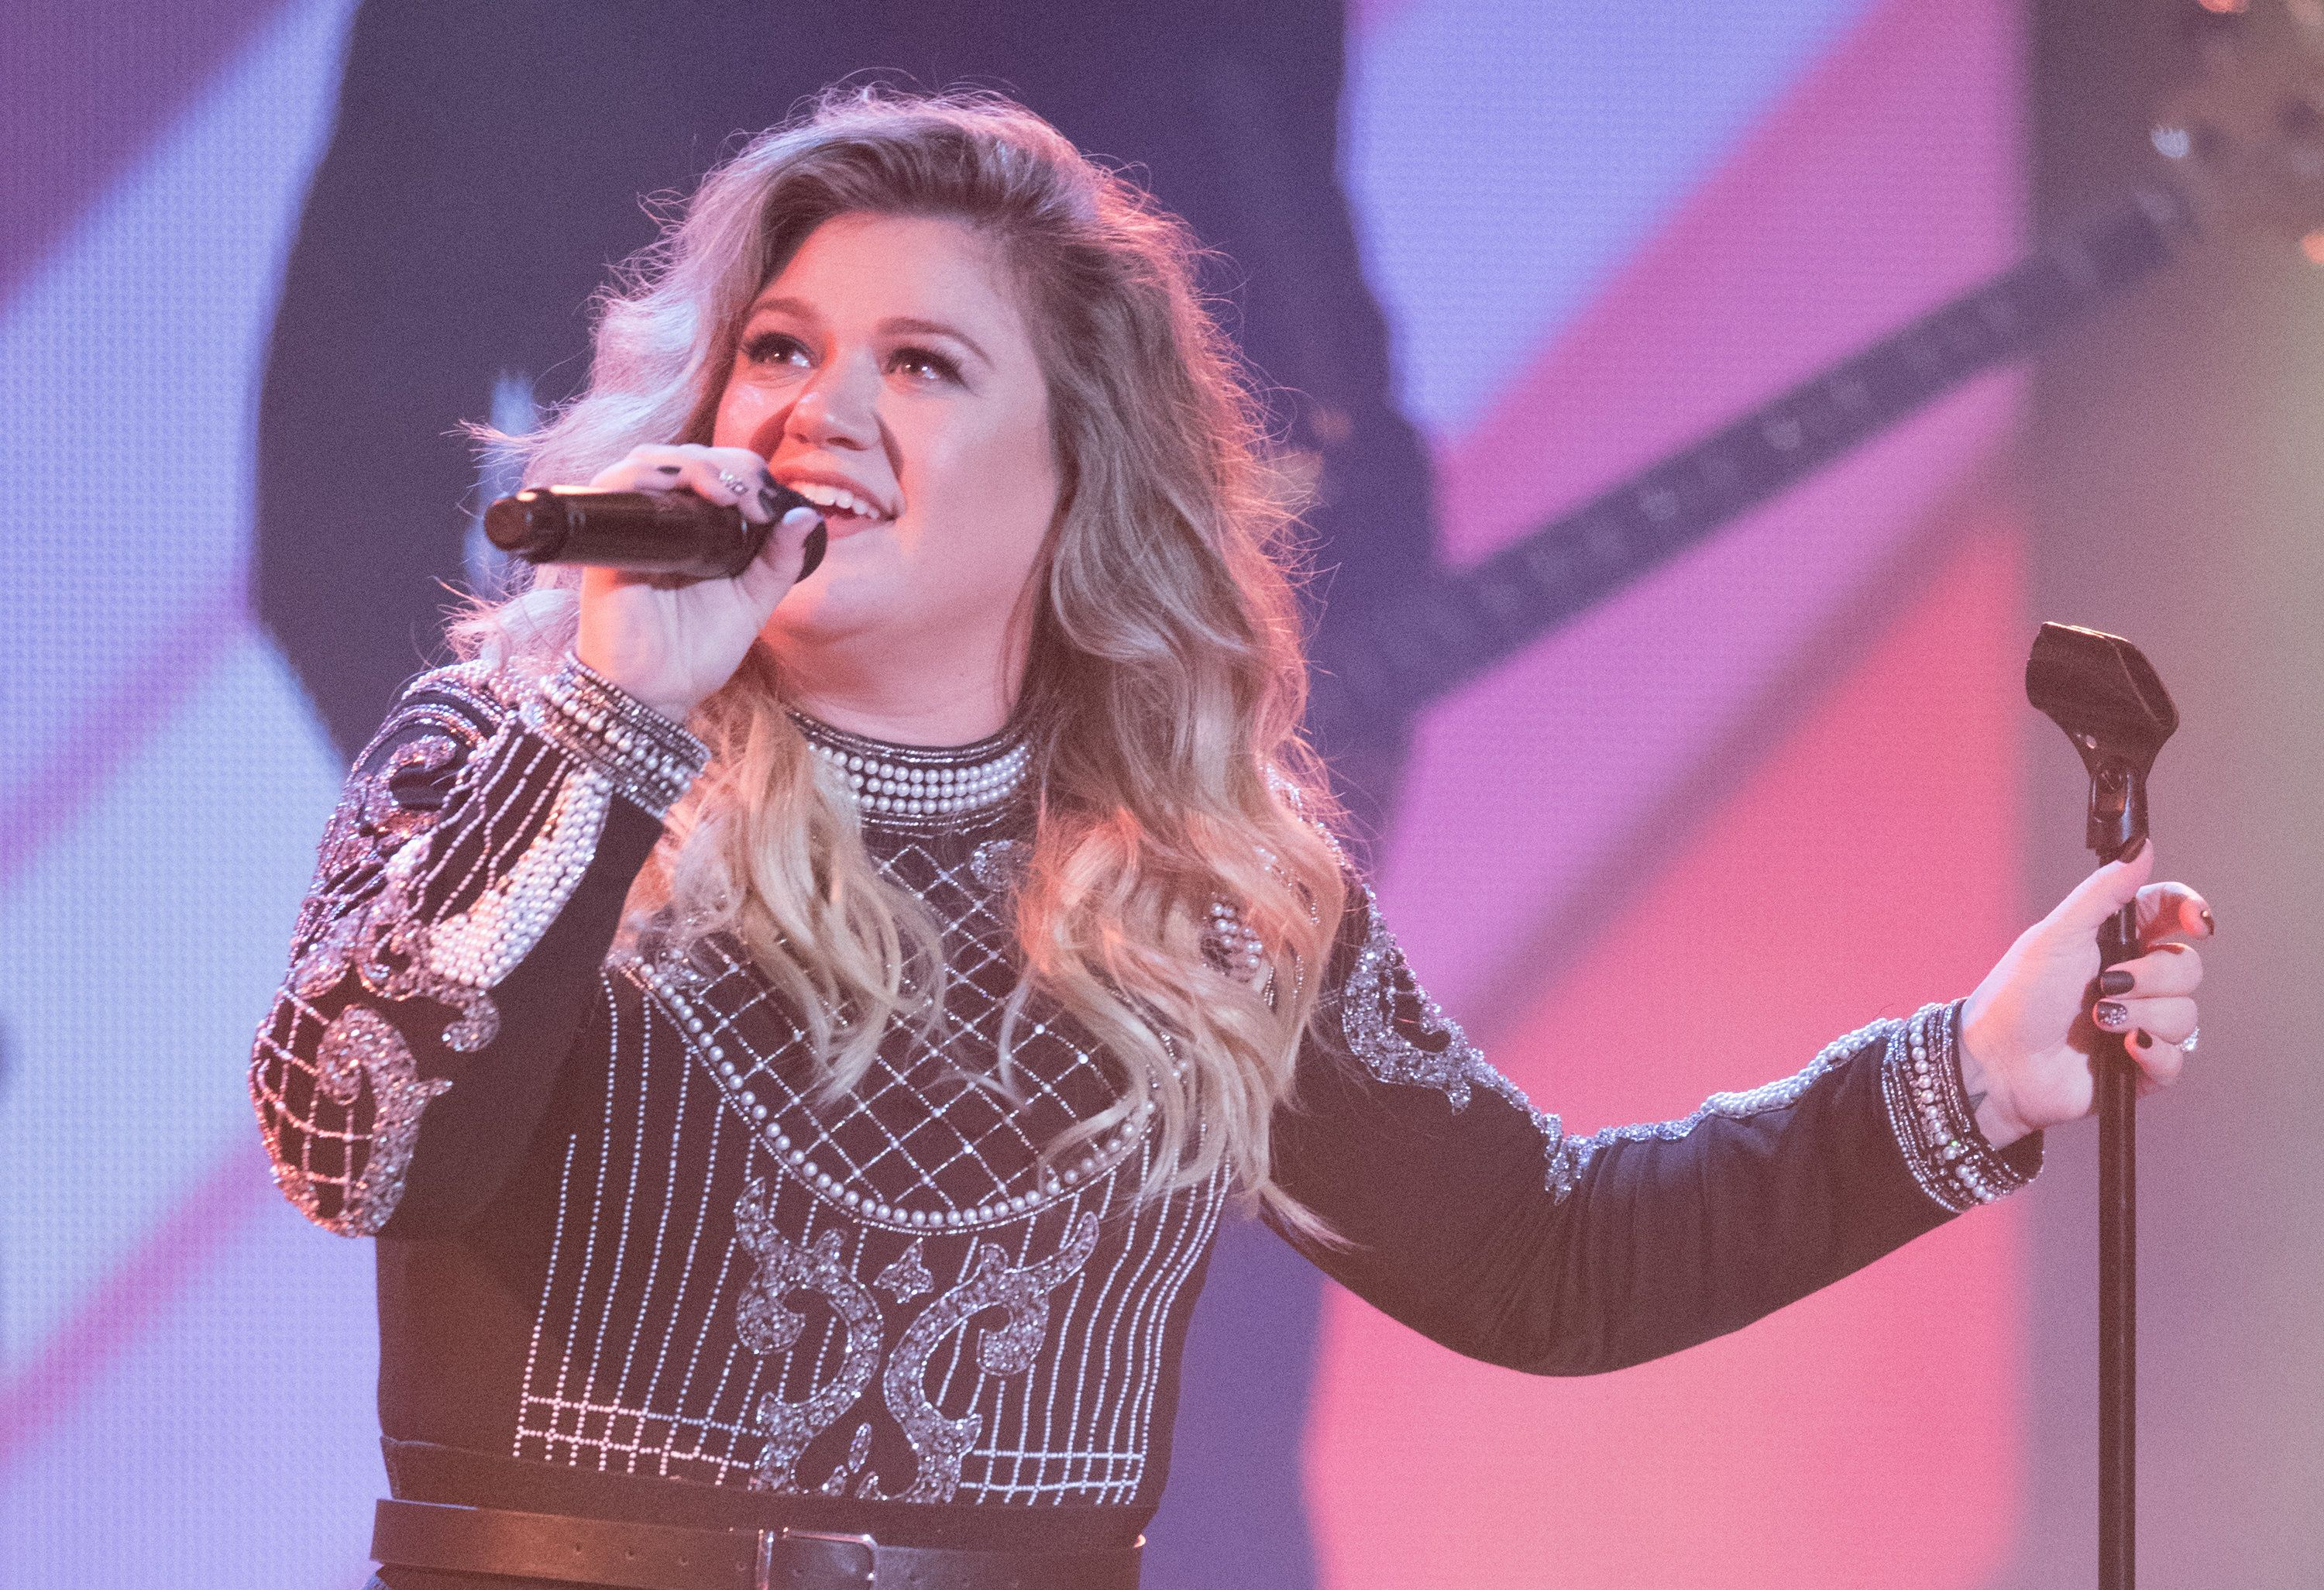 TORONTO, ON - SEPTEMBER 30:  Kelly Clarkson performs at the Closing Ceremony on day 8 of the Invictus Games Toronto 2017 on September 30, 2017 in Toronto, Canada.  The Games use the power of sport to inspire recovery, support rehabilitation and generate a wider understanding and respect for the Armed Forces.  (Photo by Samir Hussein/Samir Hussein/WireImage)